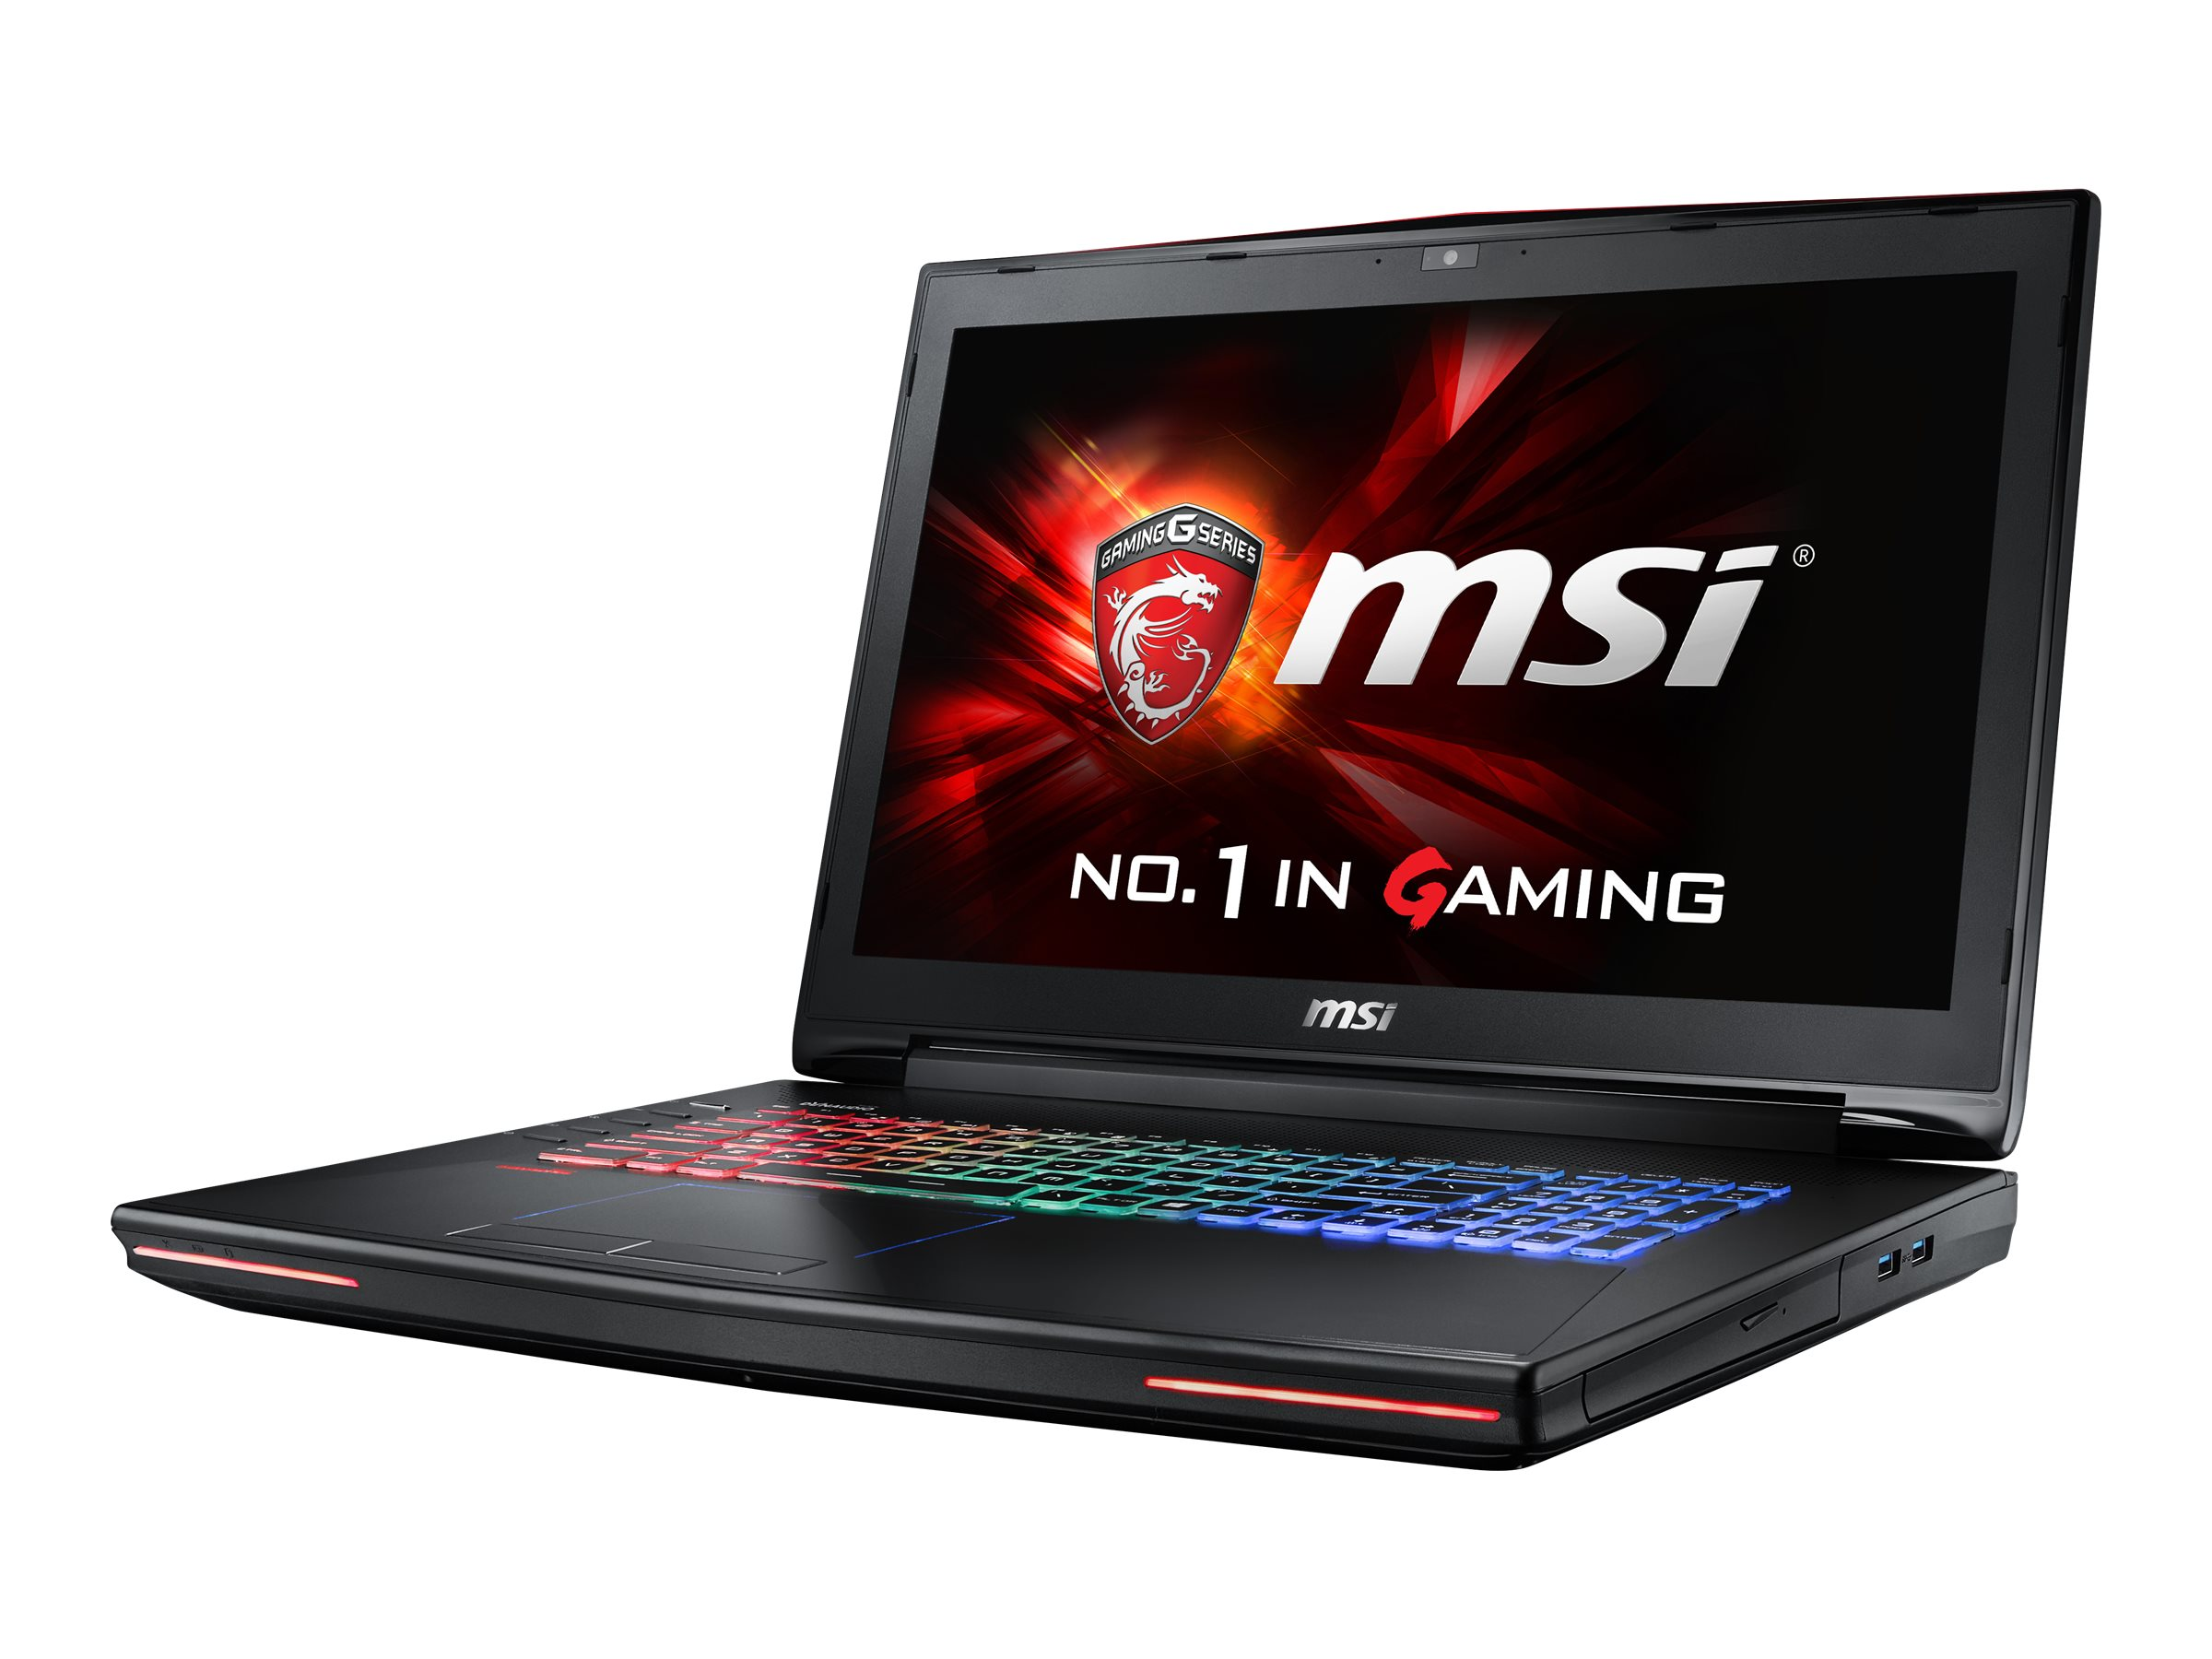 MSI GT72VR Dominator-063 Notebook PC